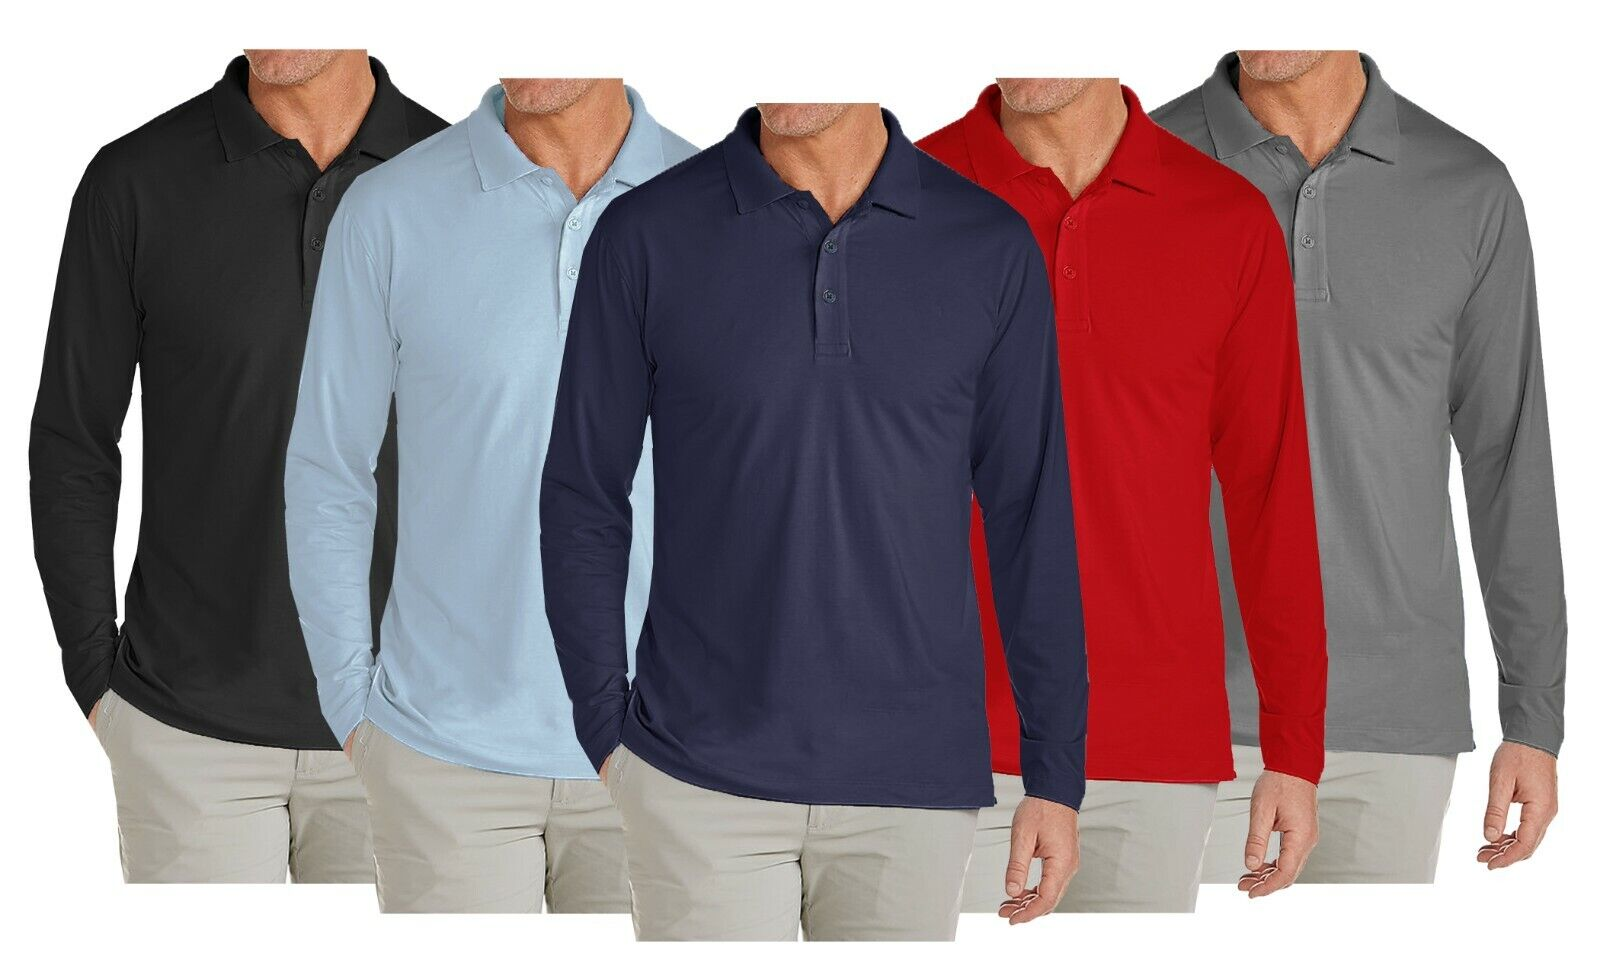 Mens Long Sleeve Long-Tail Polo Shirt Modern Fit Casual Cotton Blend Button NWT Casual Button-Down Shirts